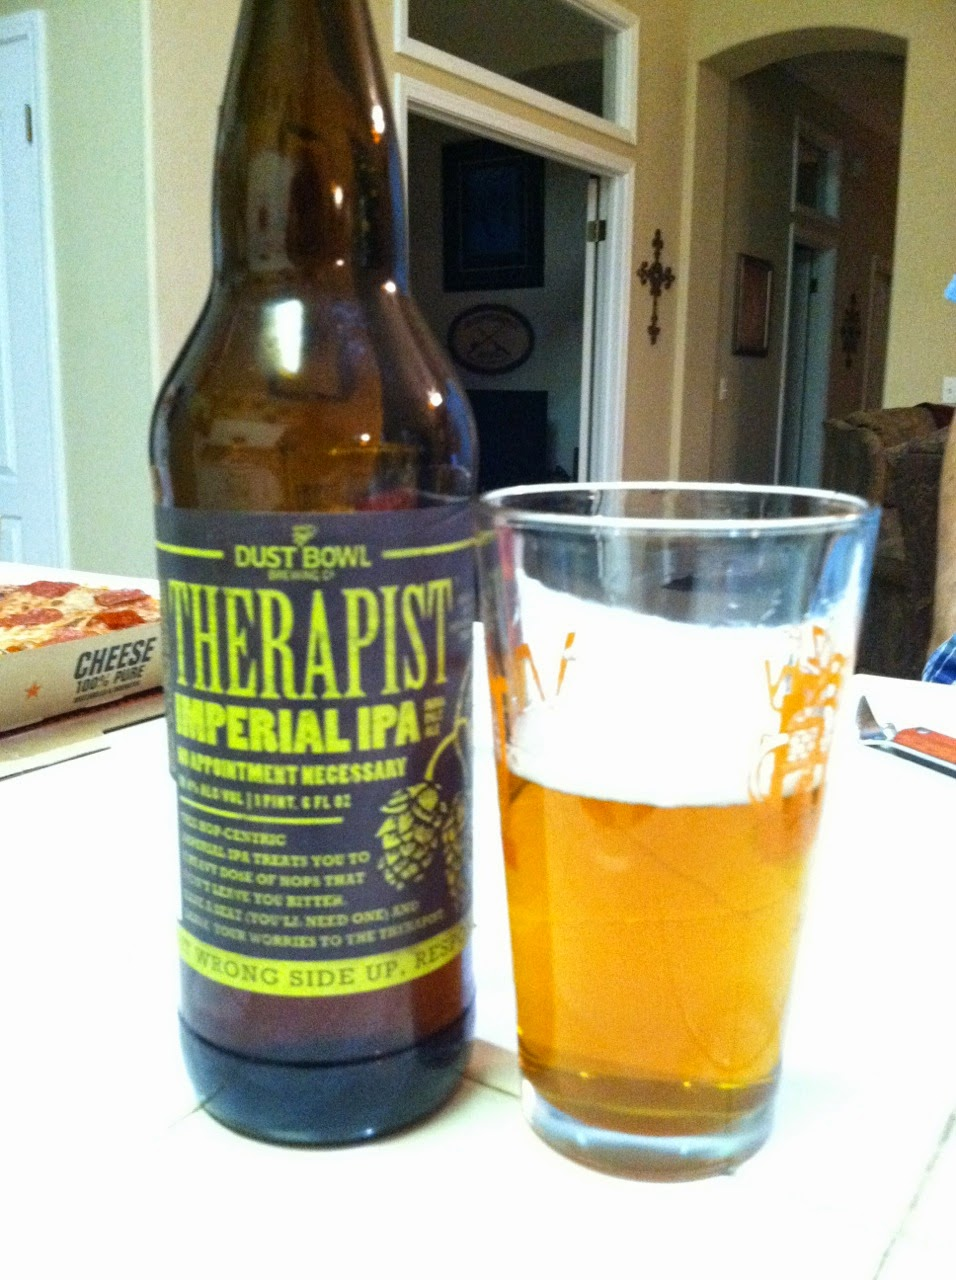 Dust Bowl Therapist Imperial IPA 3